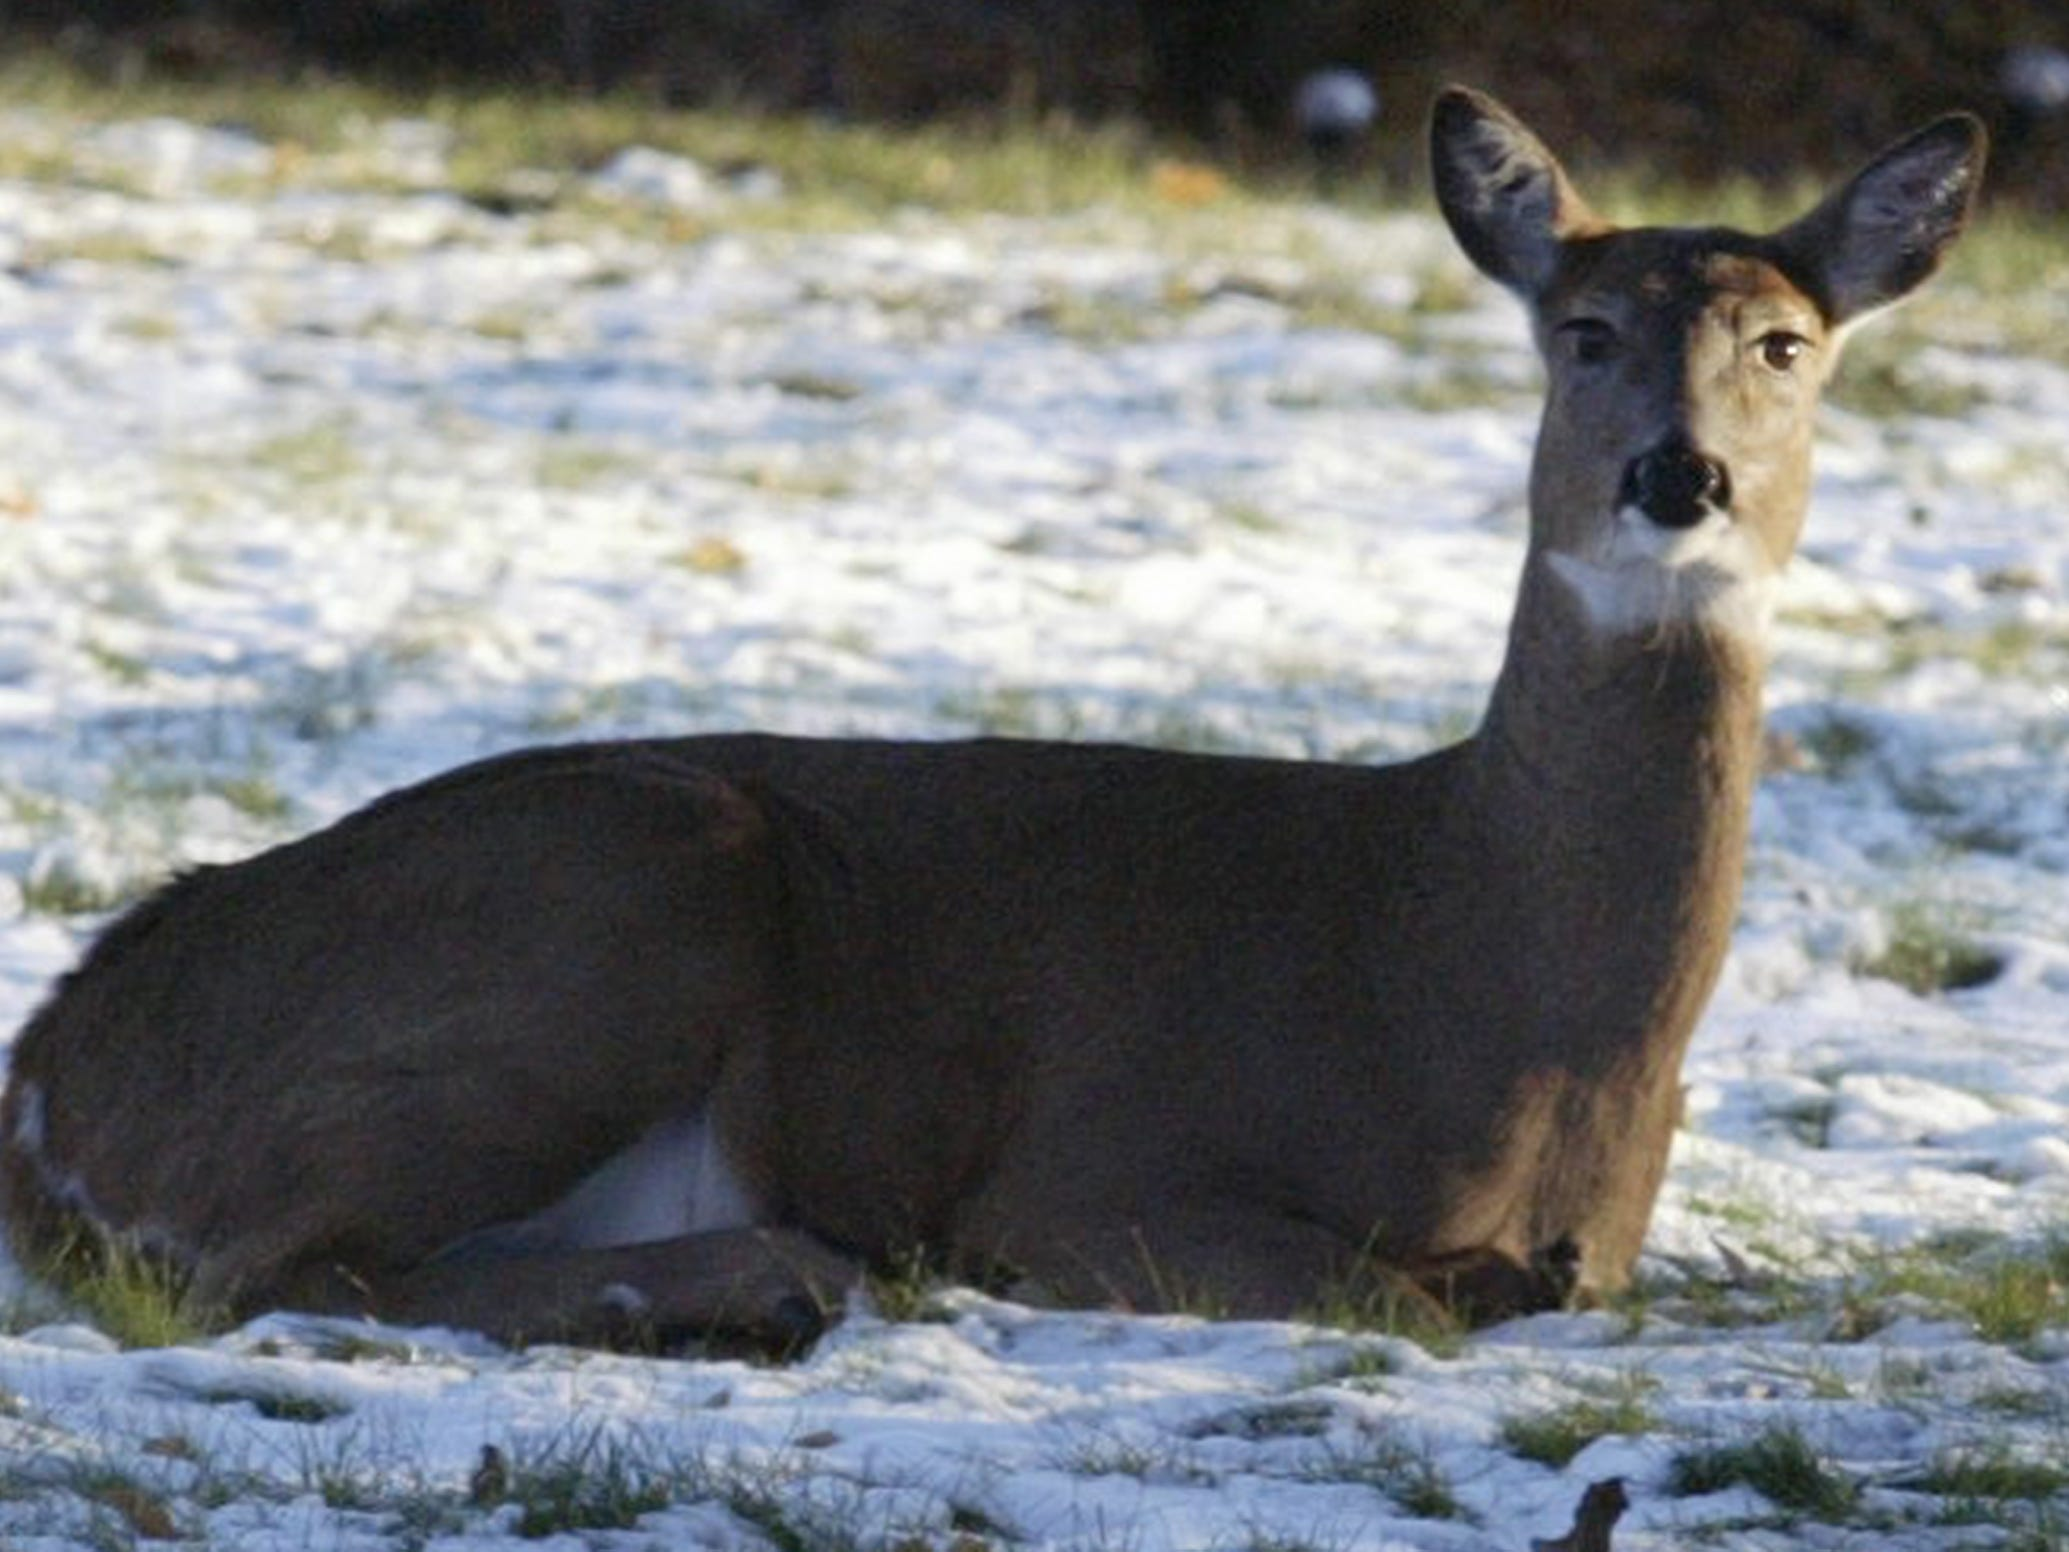 A doe sits low in the back yard of a City of Sheboygan home in the 1000 block of N. 23rd Street, Wednesday November 14, 2018, in Sheboygan, Wis.